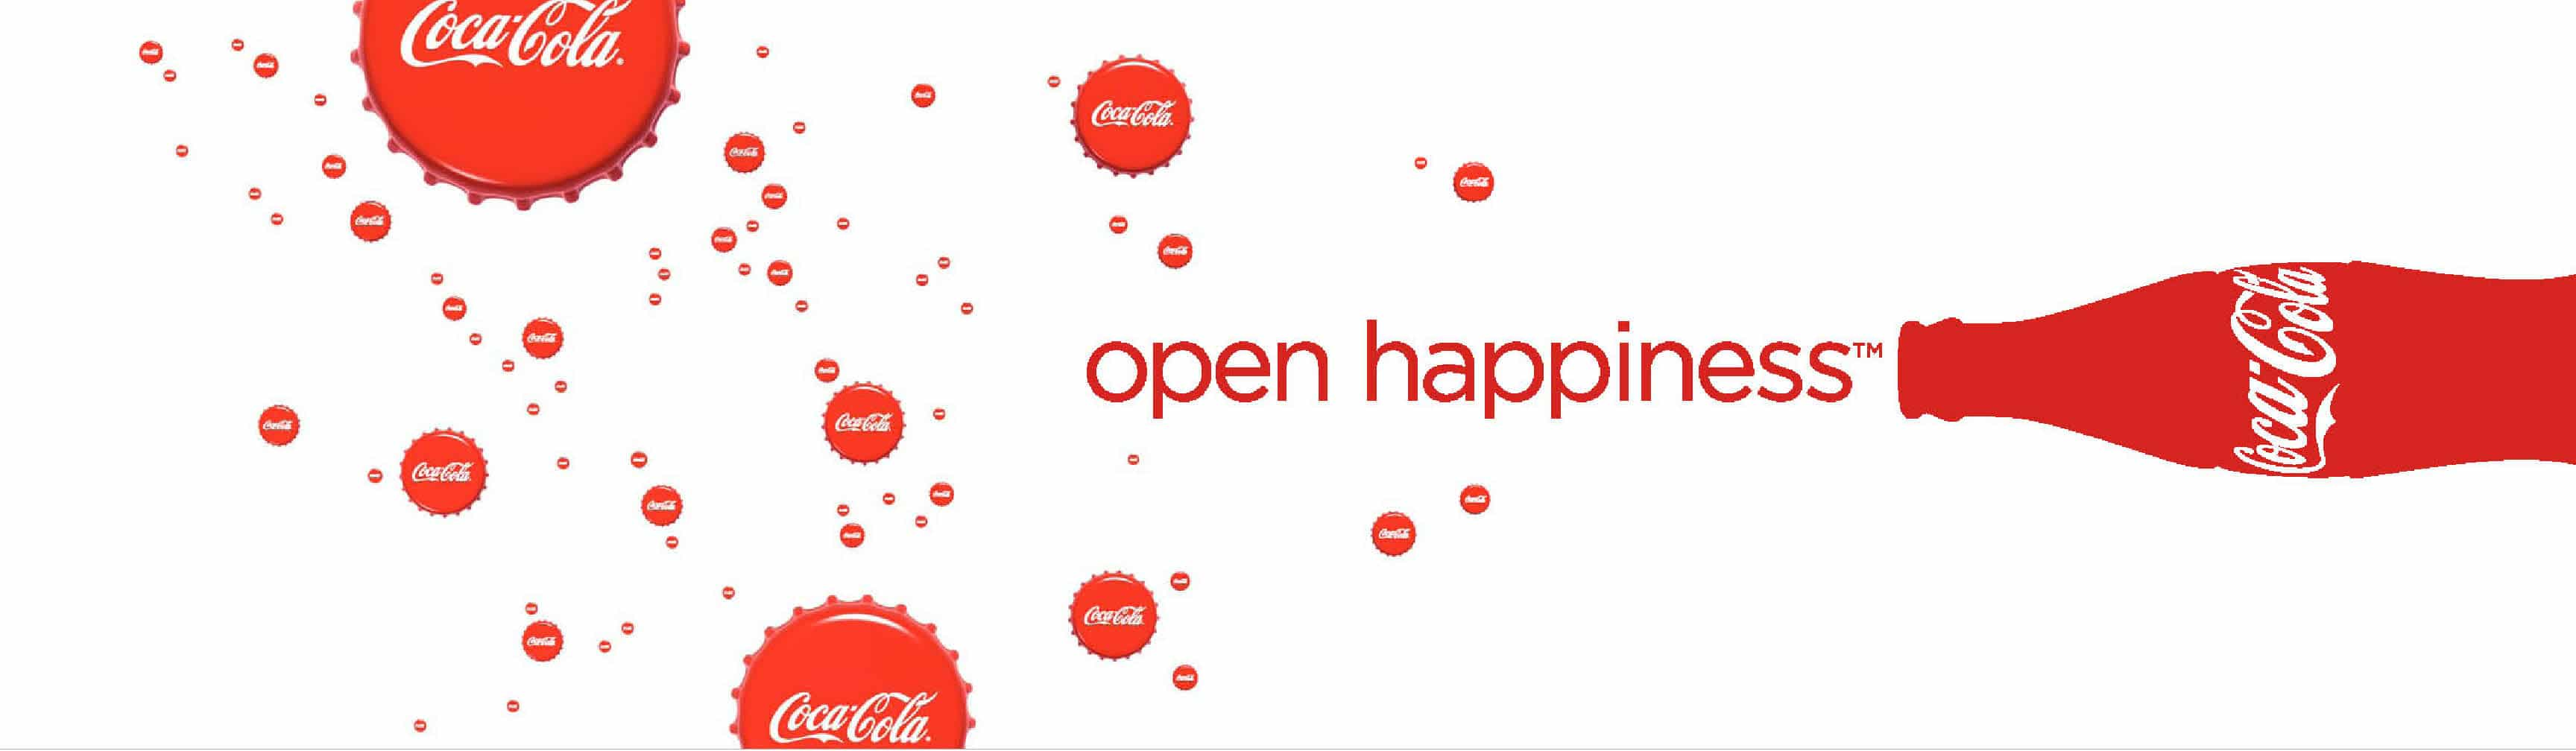 Creating A Sticky Tagline coca cola open happiness